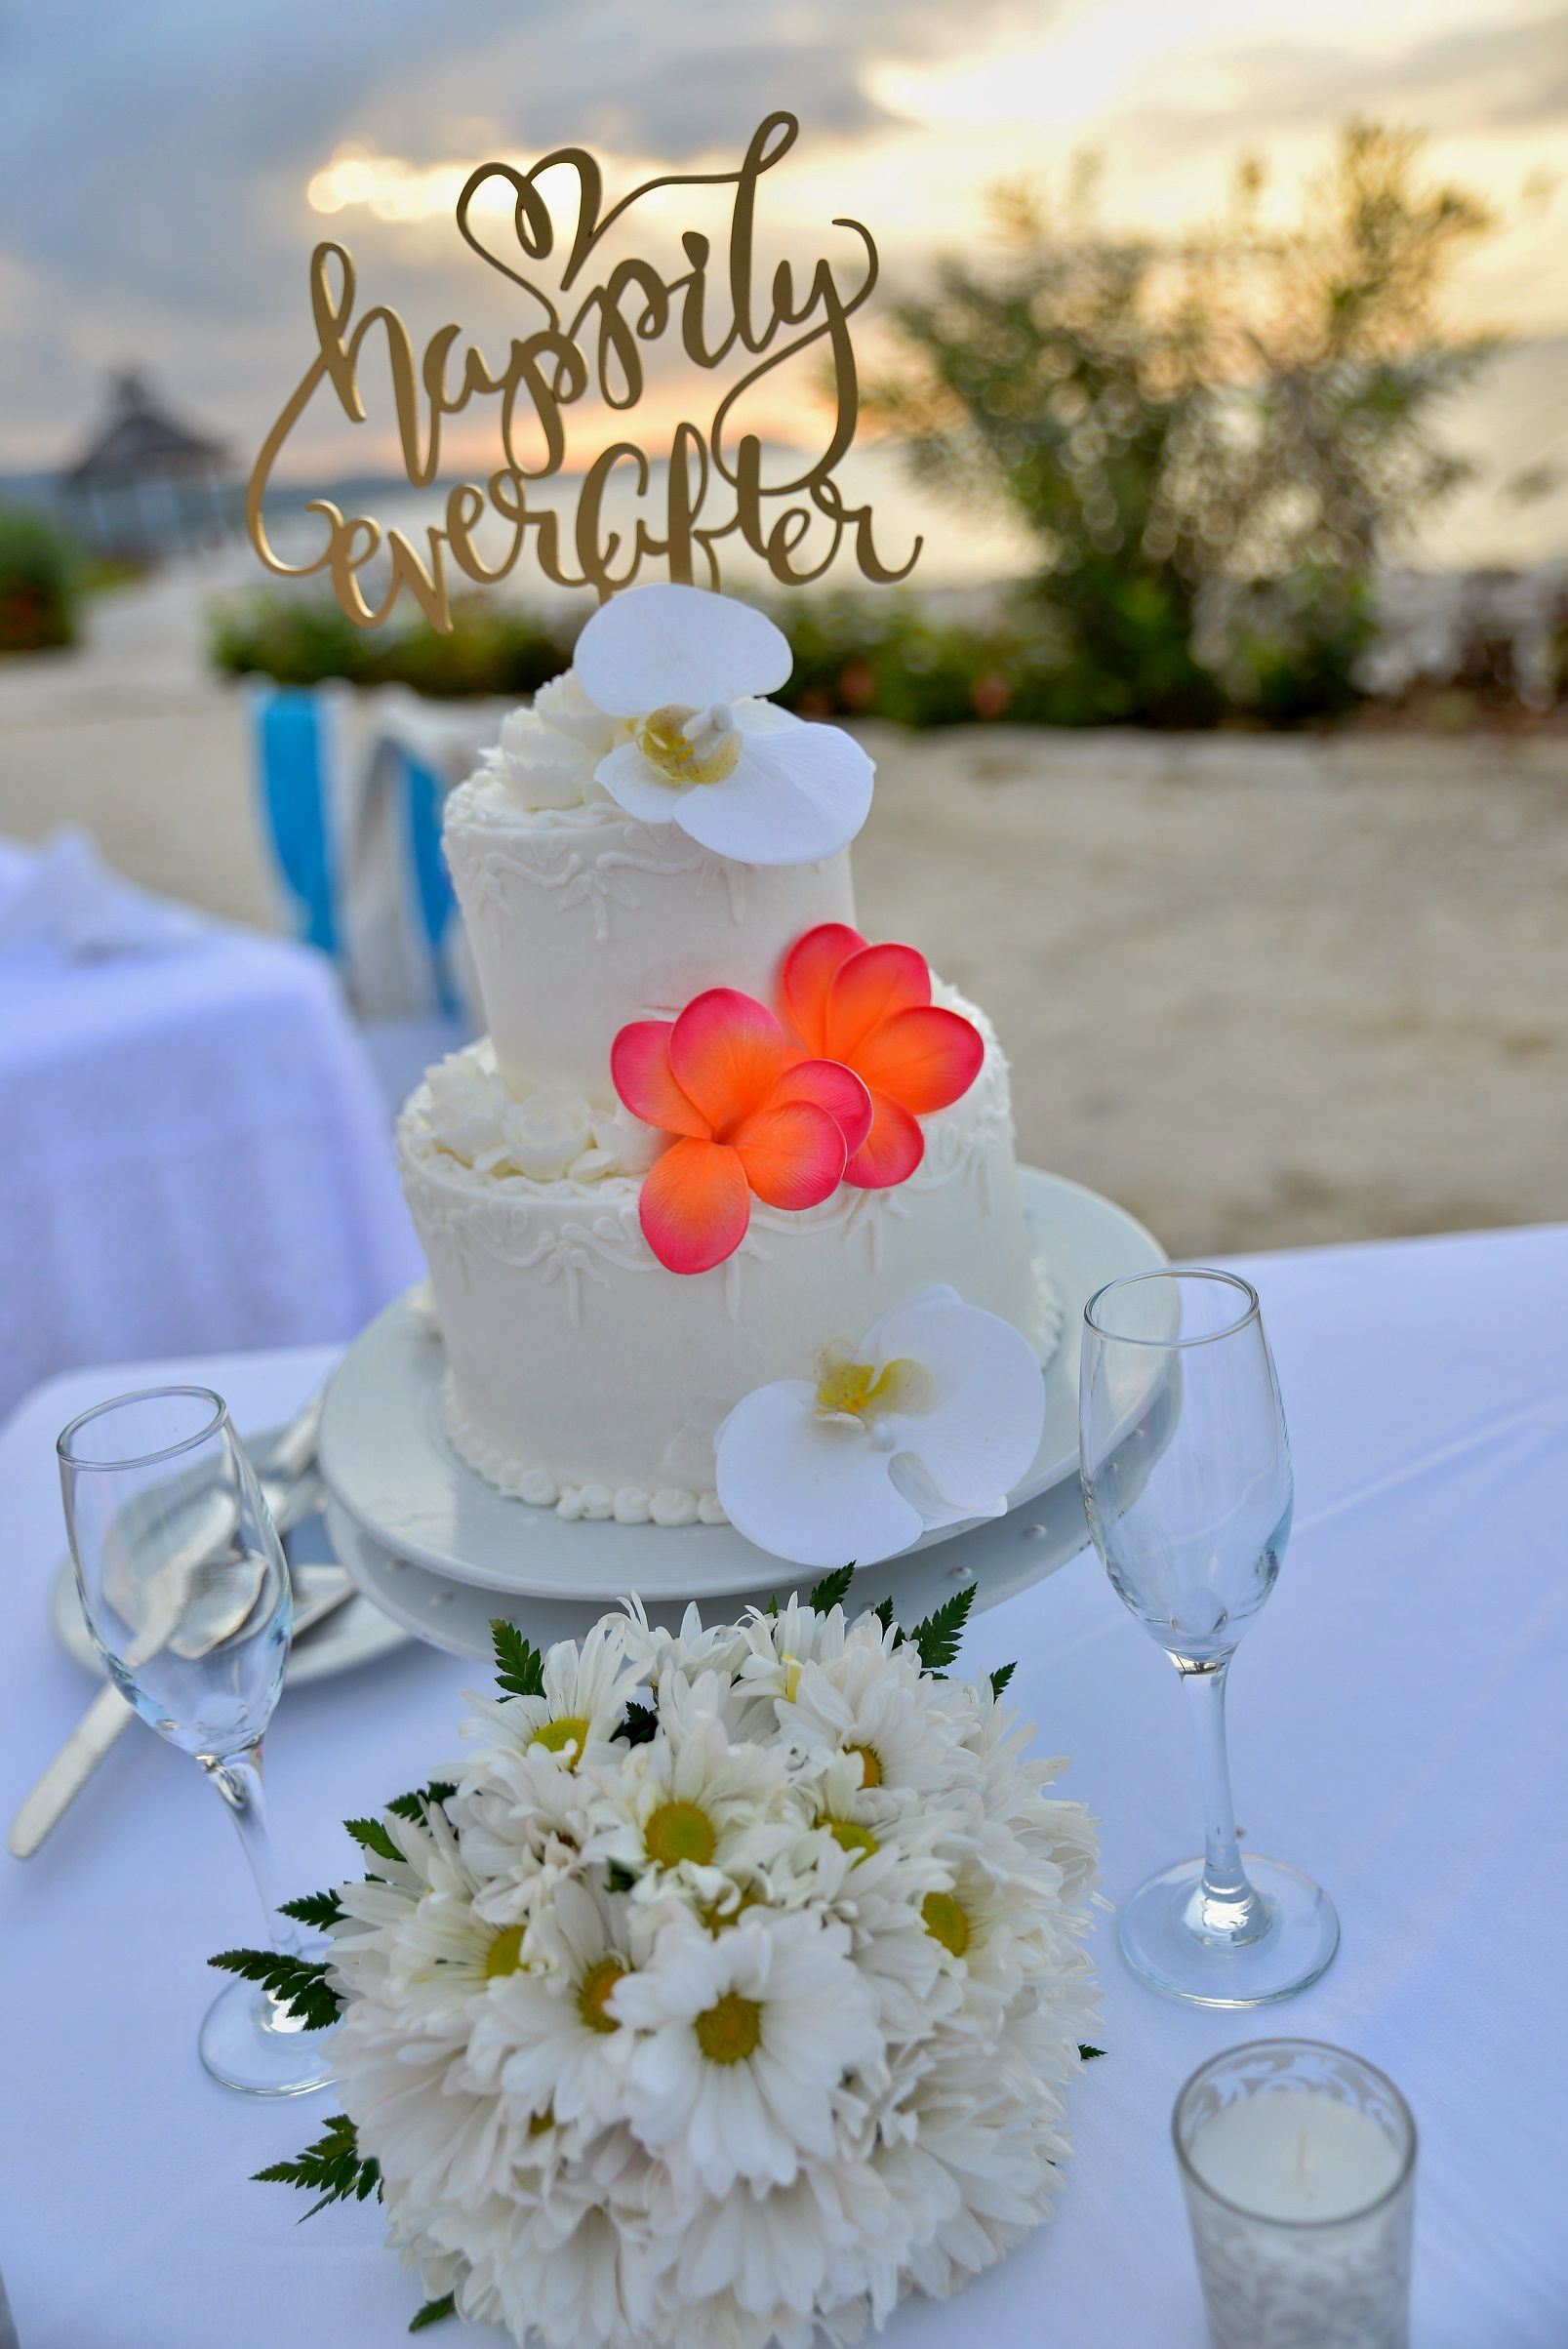 Bright Flowers To Accent A White Cake Creates The Perfect Look Secretswildorchidmontegobay Secretsstjamesmonteg Secrets Wild Orchid Bright Flowers White Cake